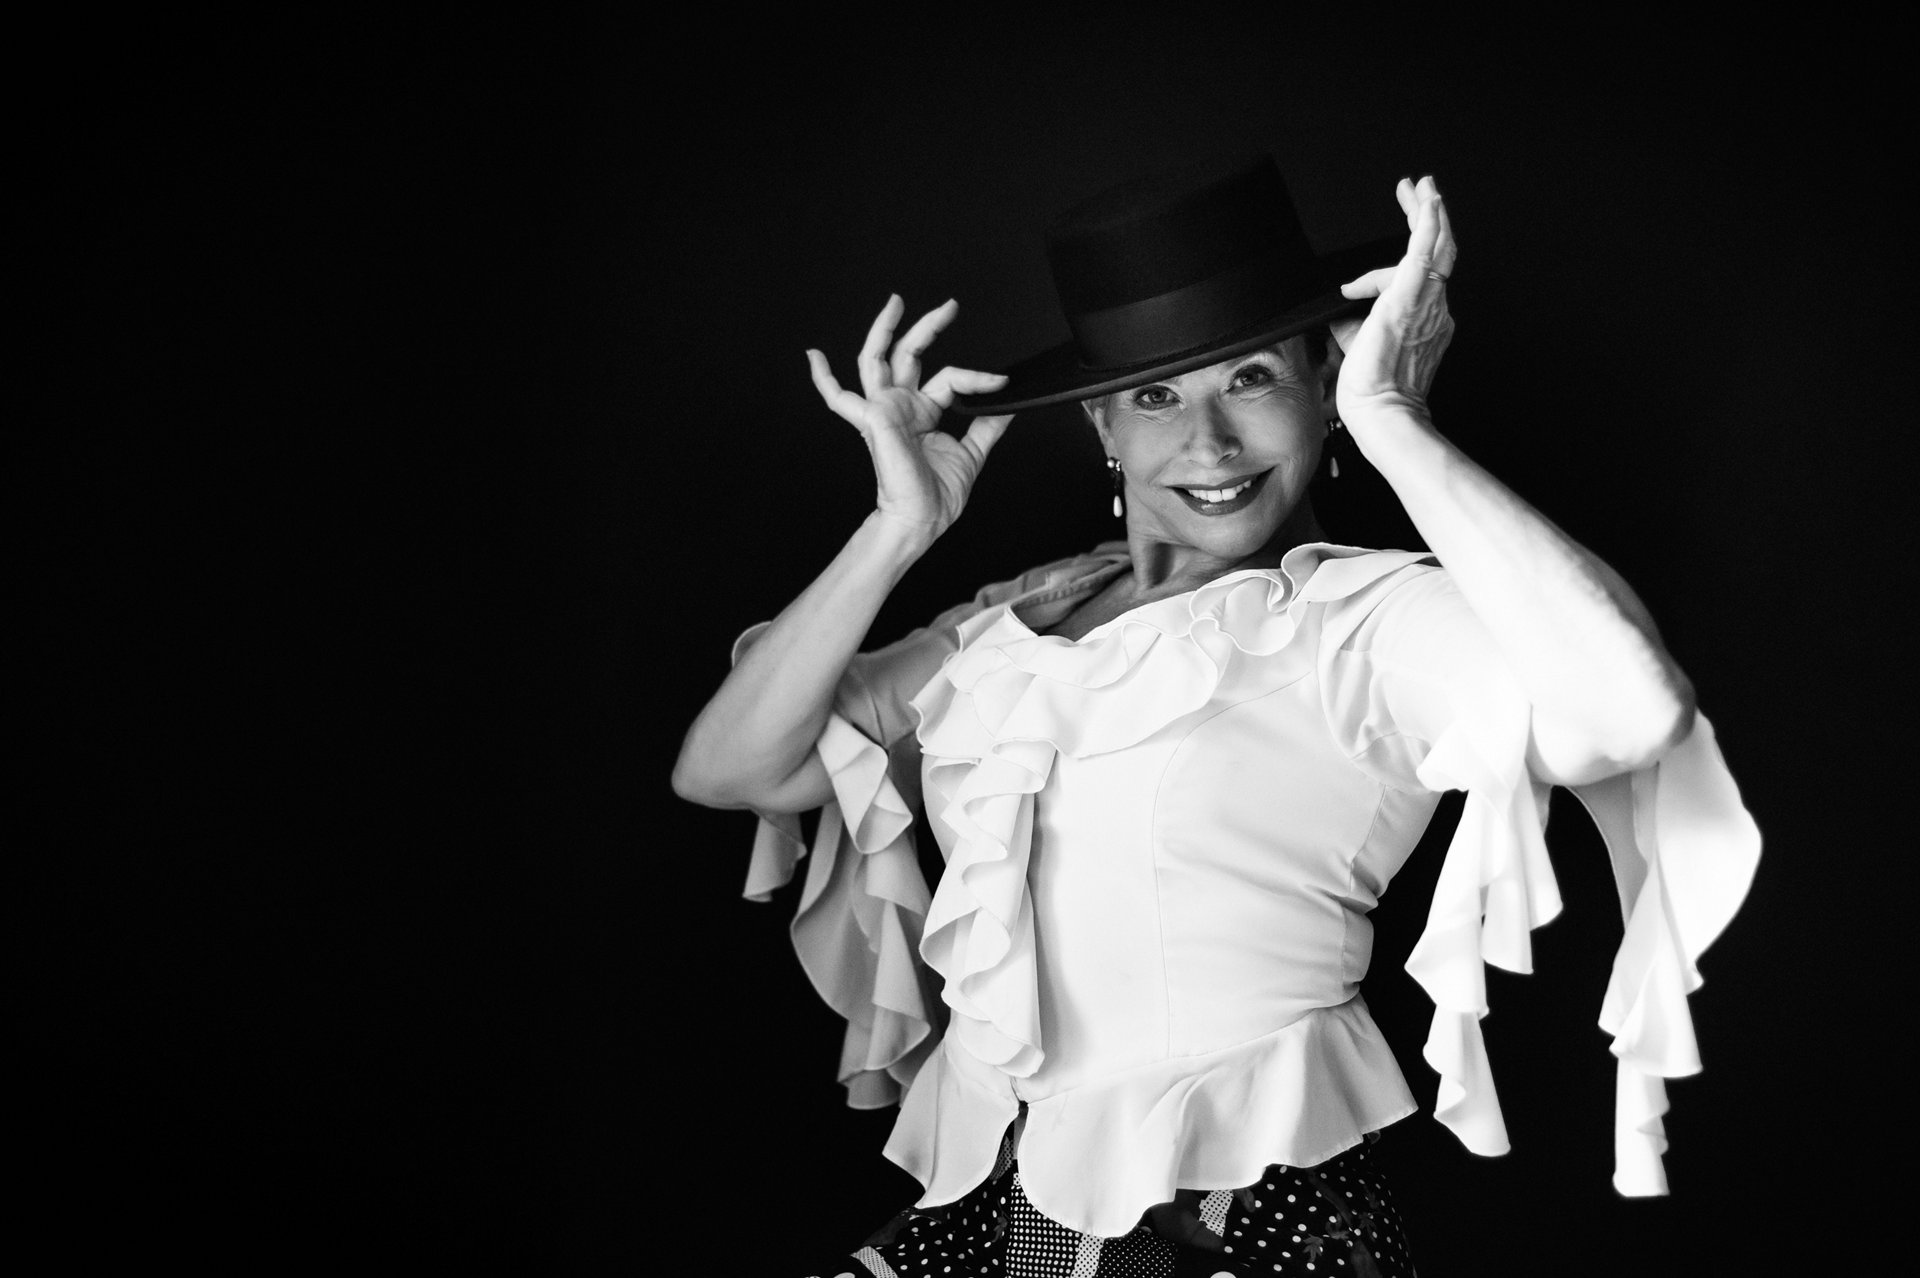 Tommy Xing Los Angeles Orange County Dance Photography 17.jpg